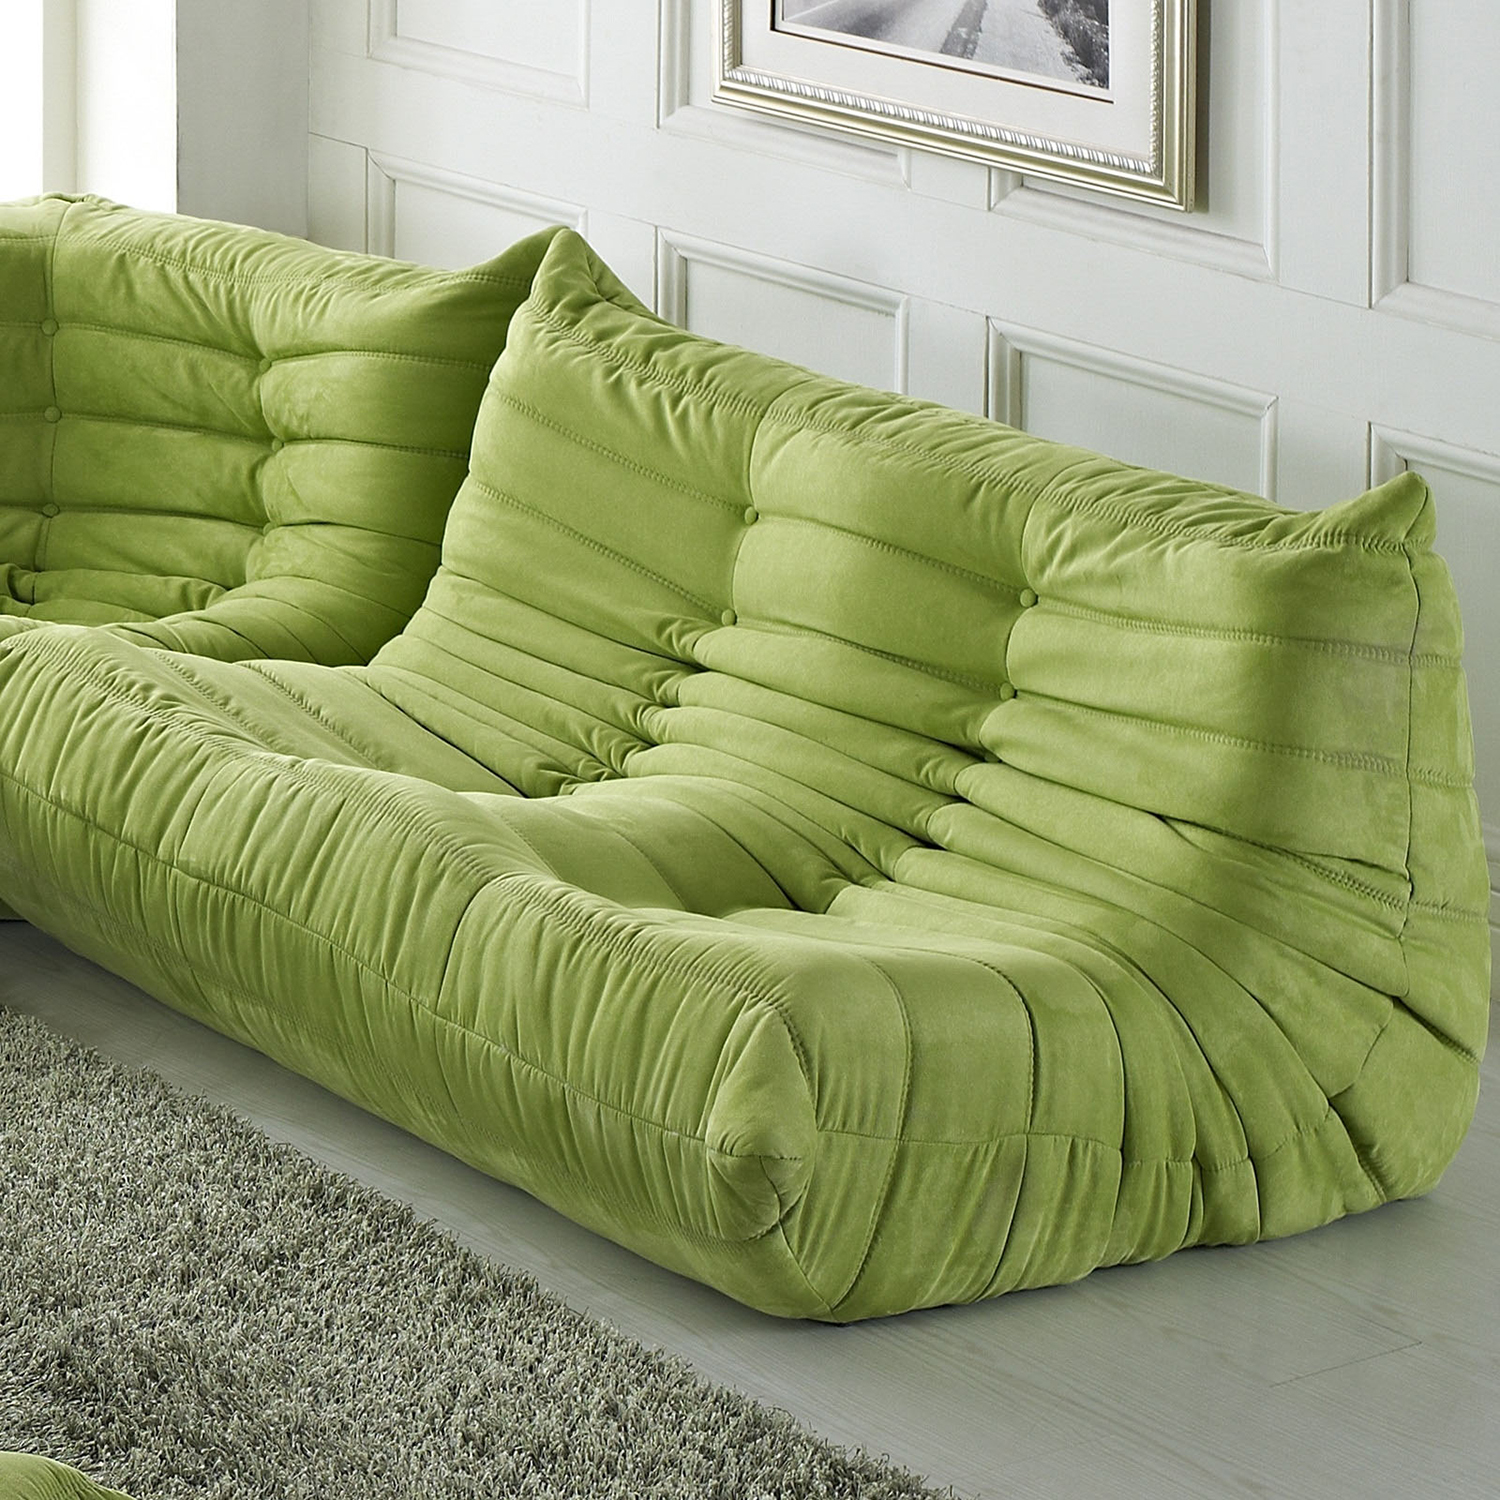 Waverunner Loveseat - Tufted - EEI-902